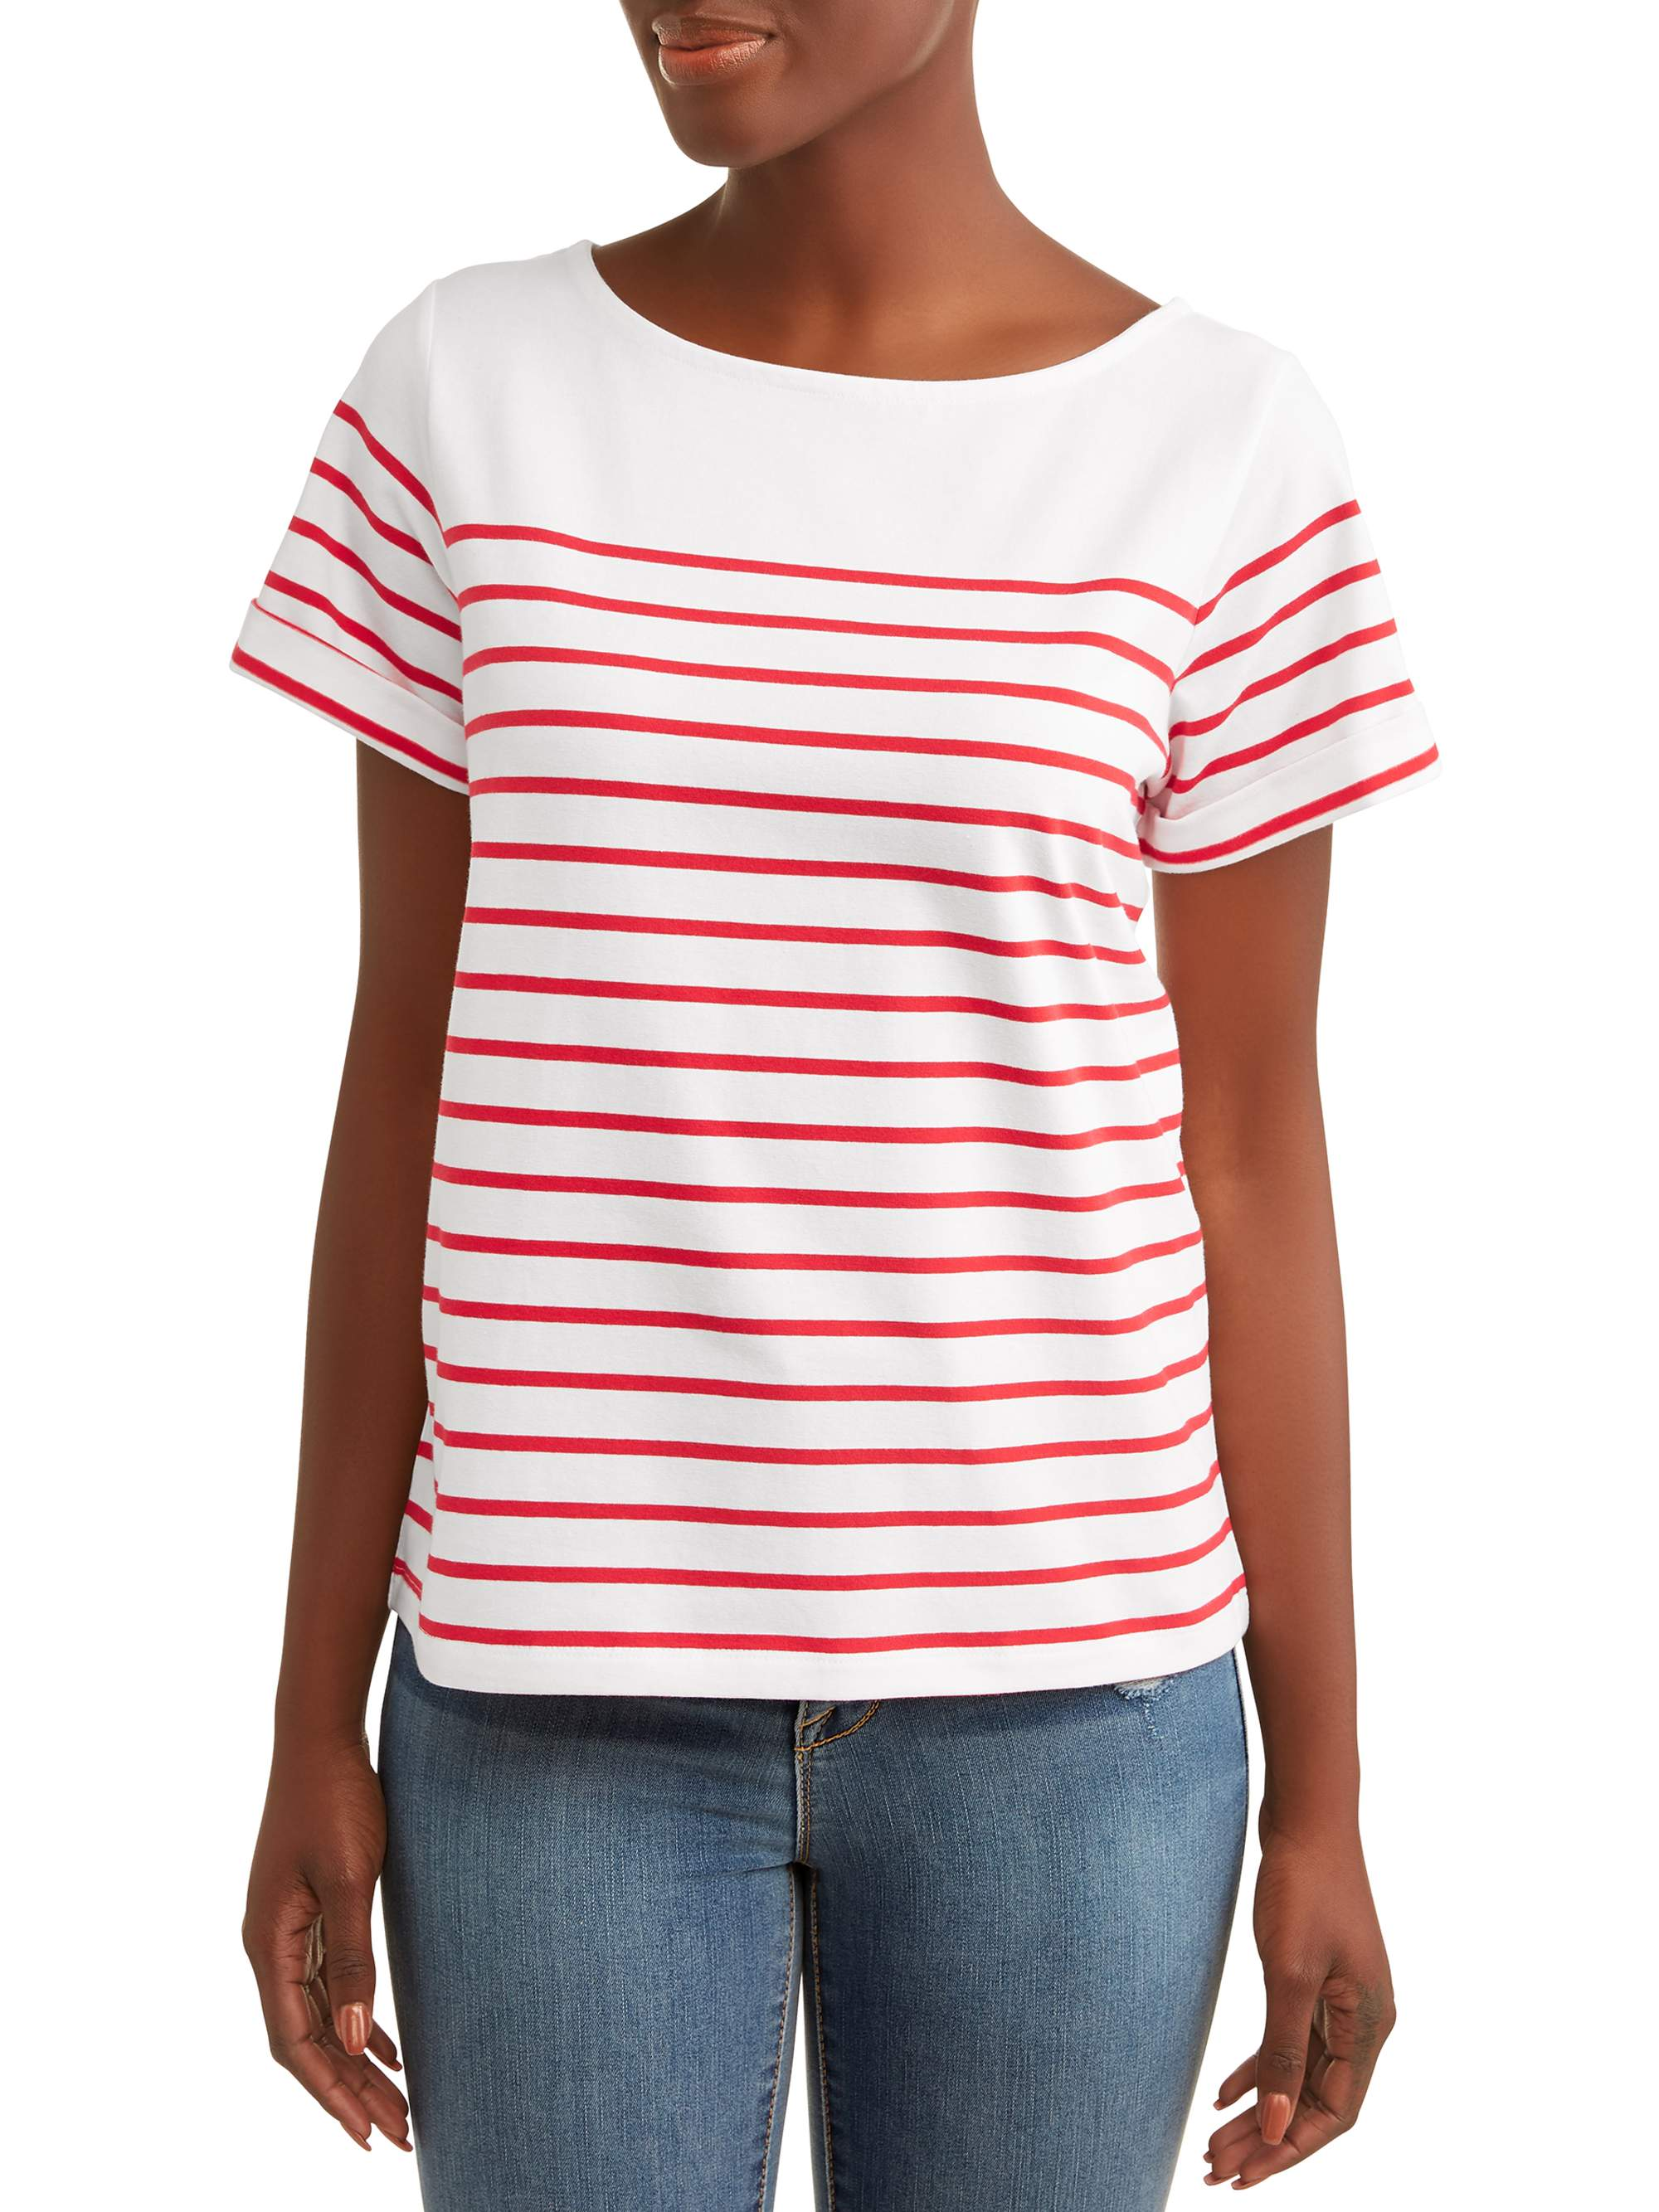 Women's Short Sleeve Boatneck Top